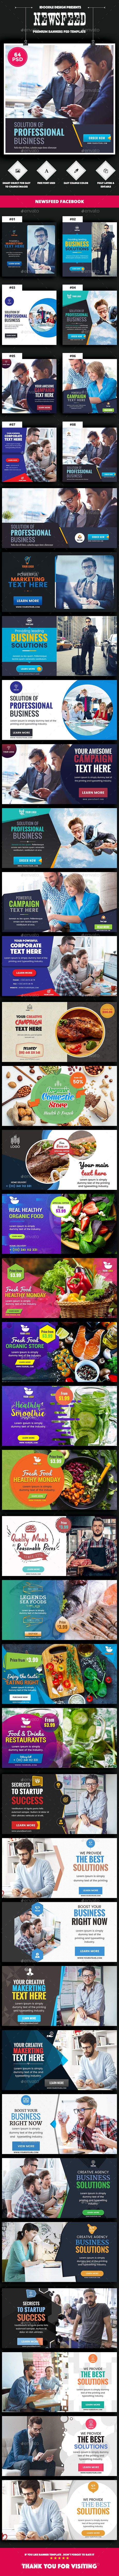 Bundle NewsFeed Promotion Banners Ad [03 Sets] - 64PSD - Banners & Ads Web Elements